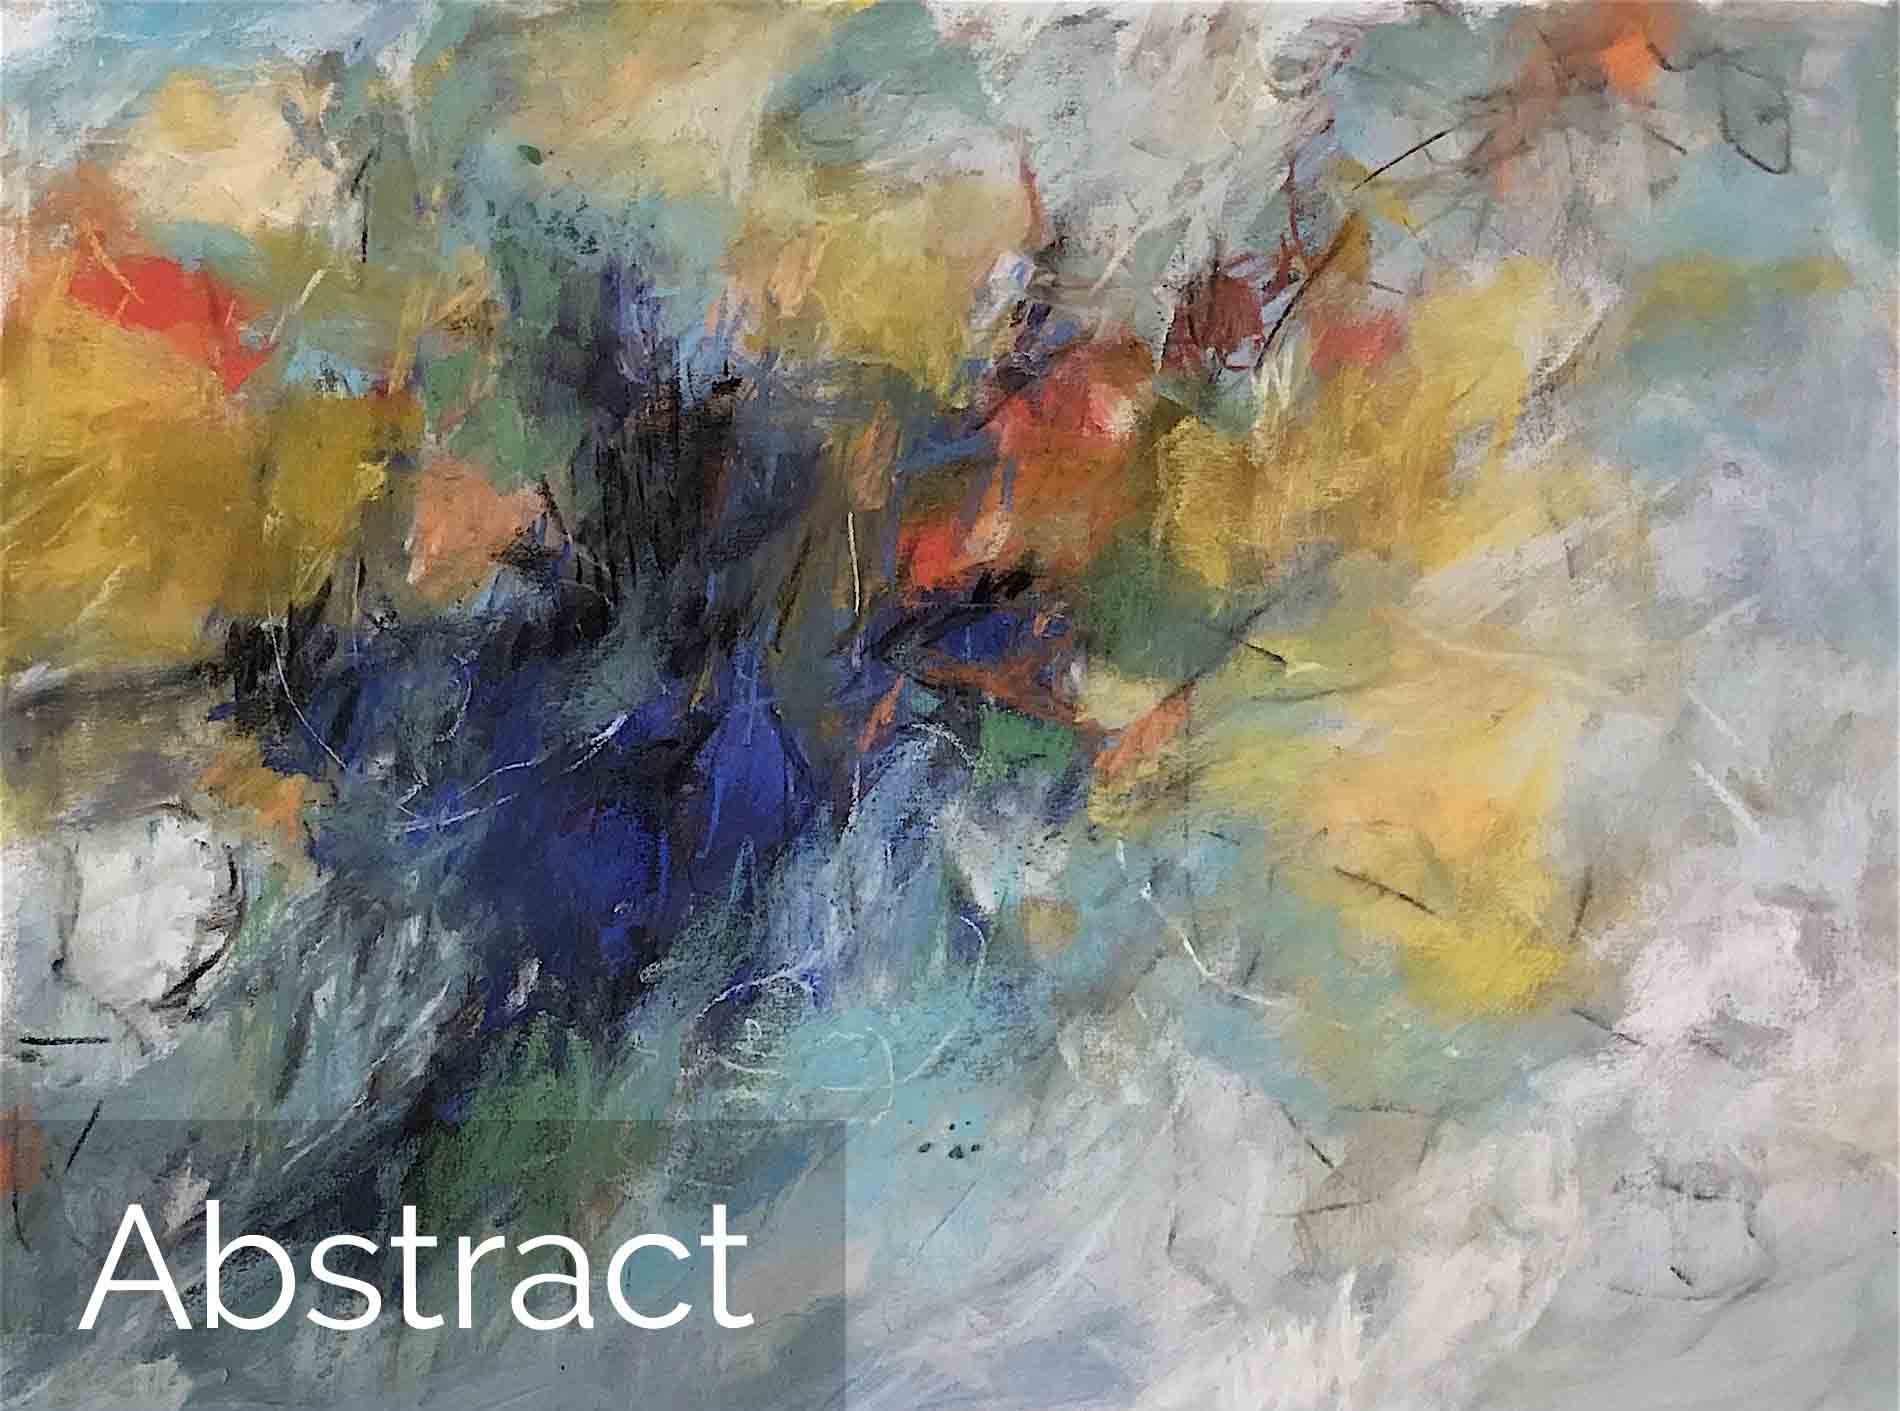 Michèle J. Kenna Abstract Paintings for Sale - Pastel and Mixed Media